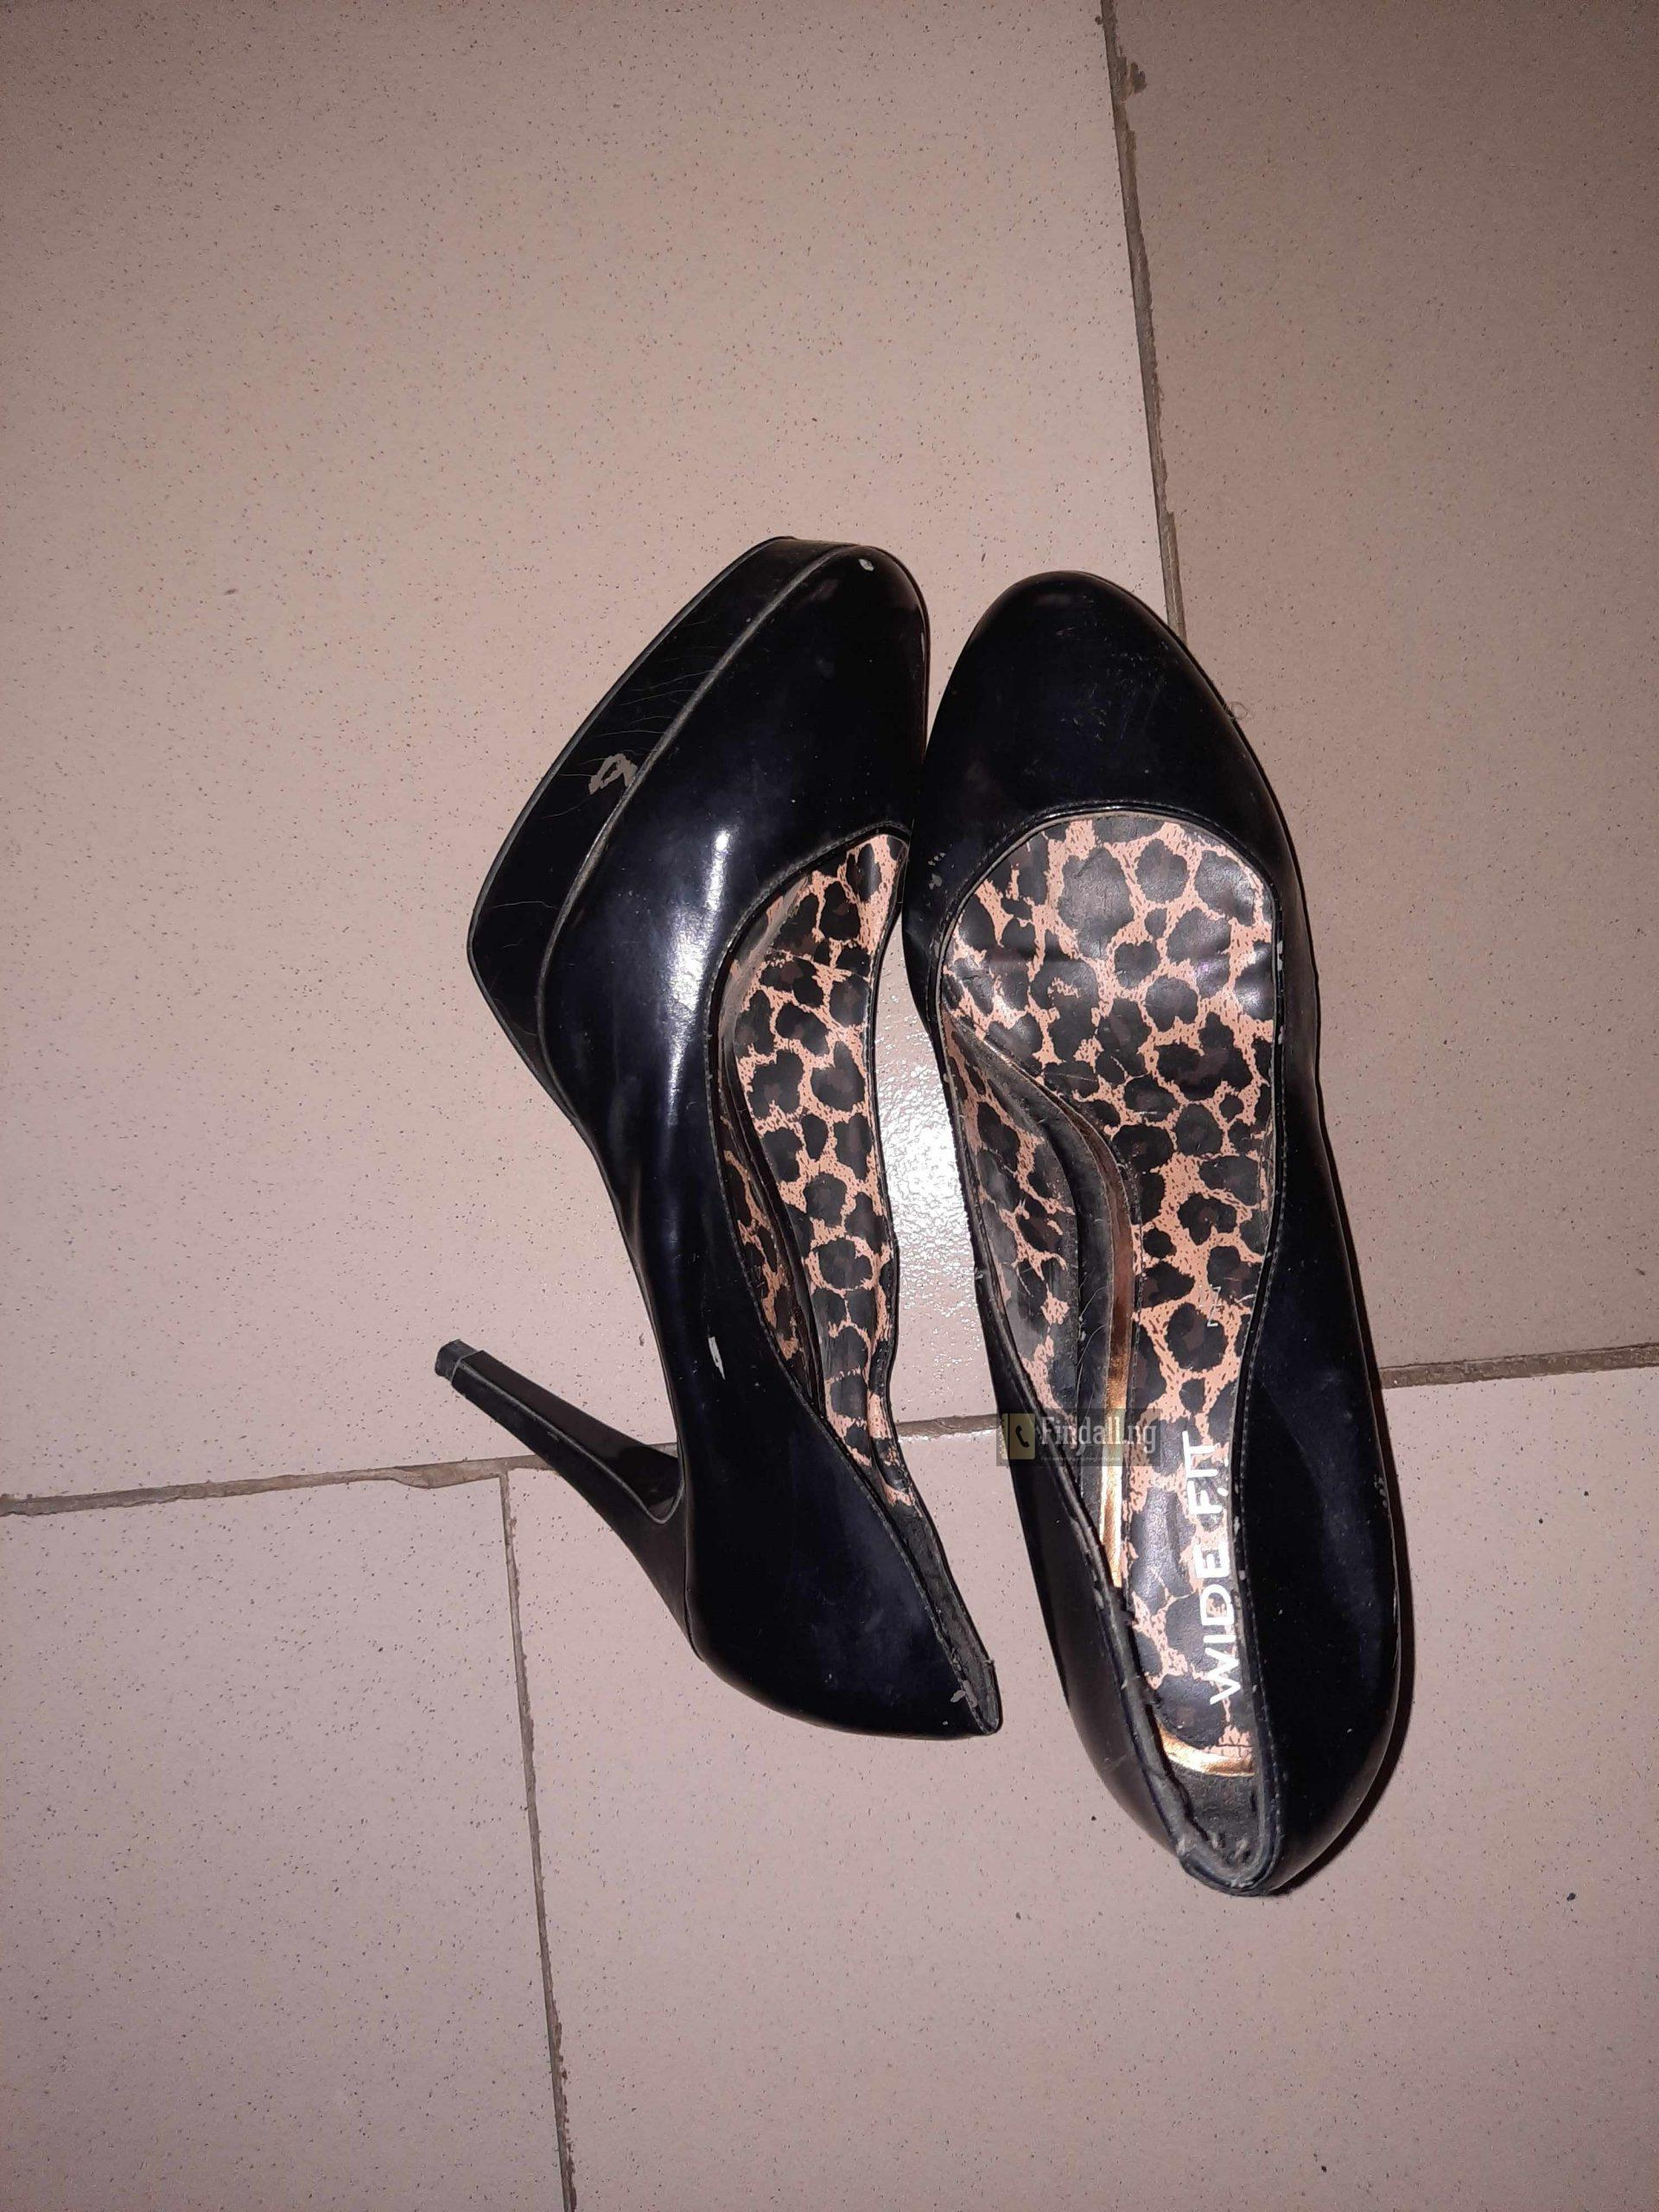 Used Designers shoes for free